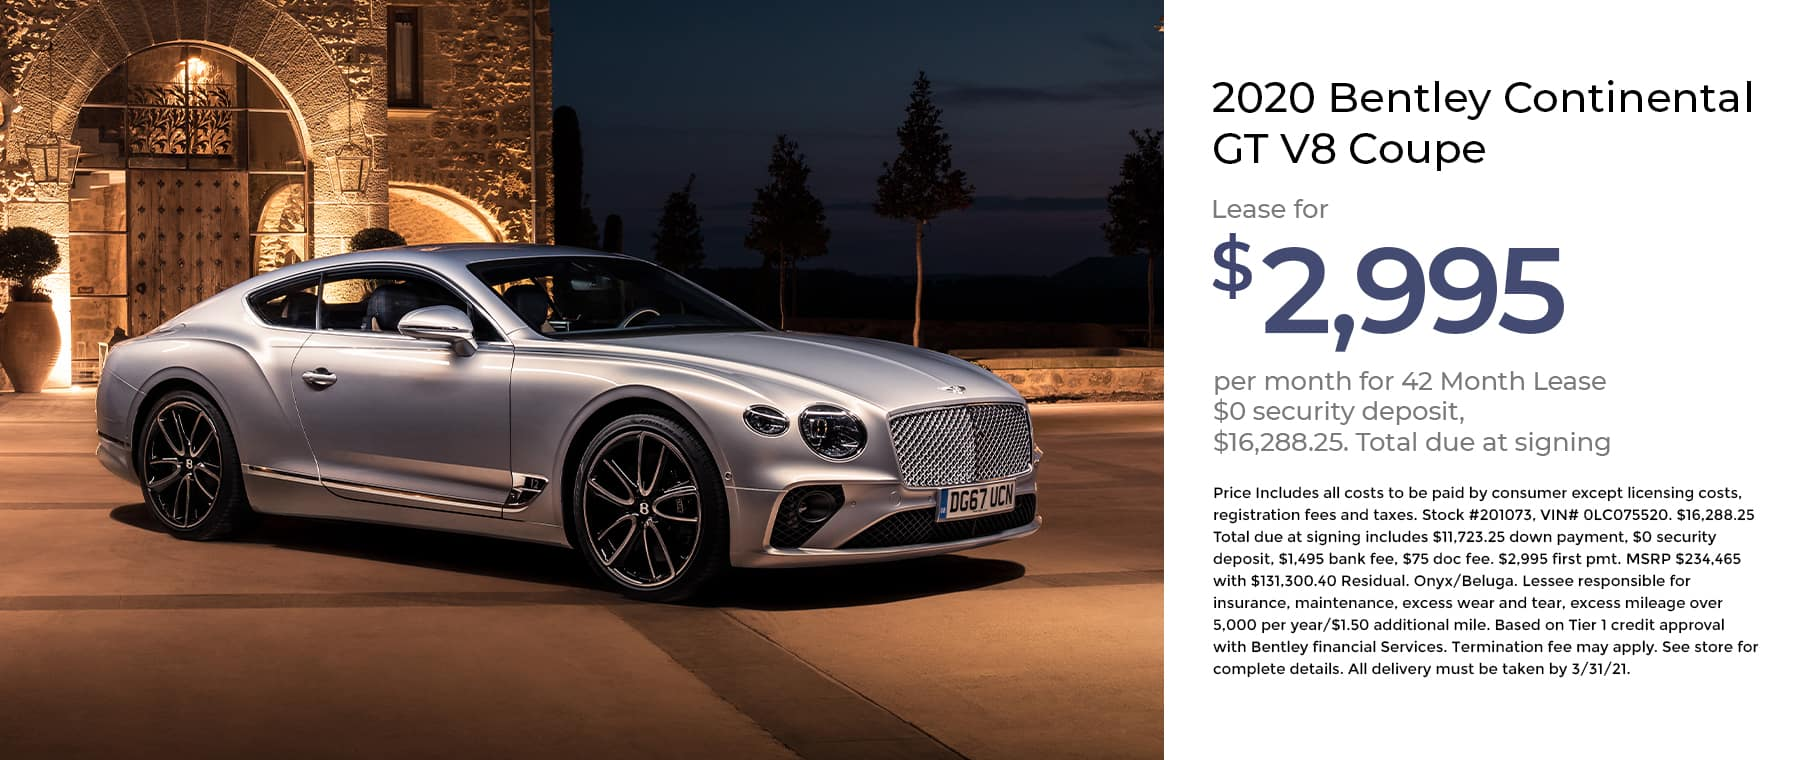 Bentley Continental GT V8 Coupe1800x760 January 2021